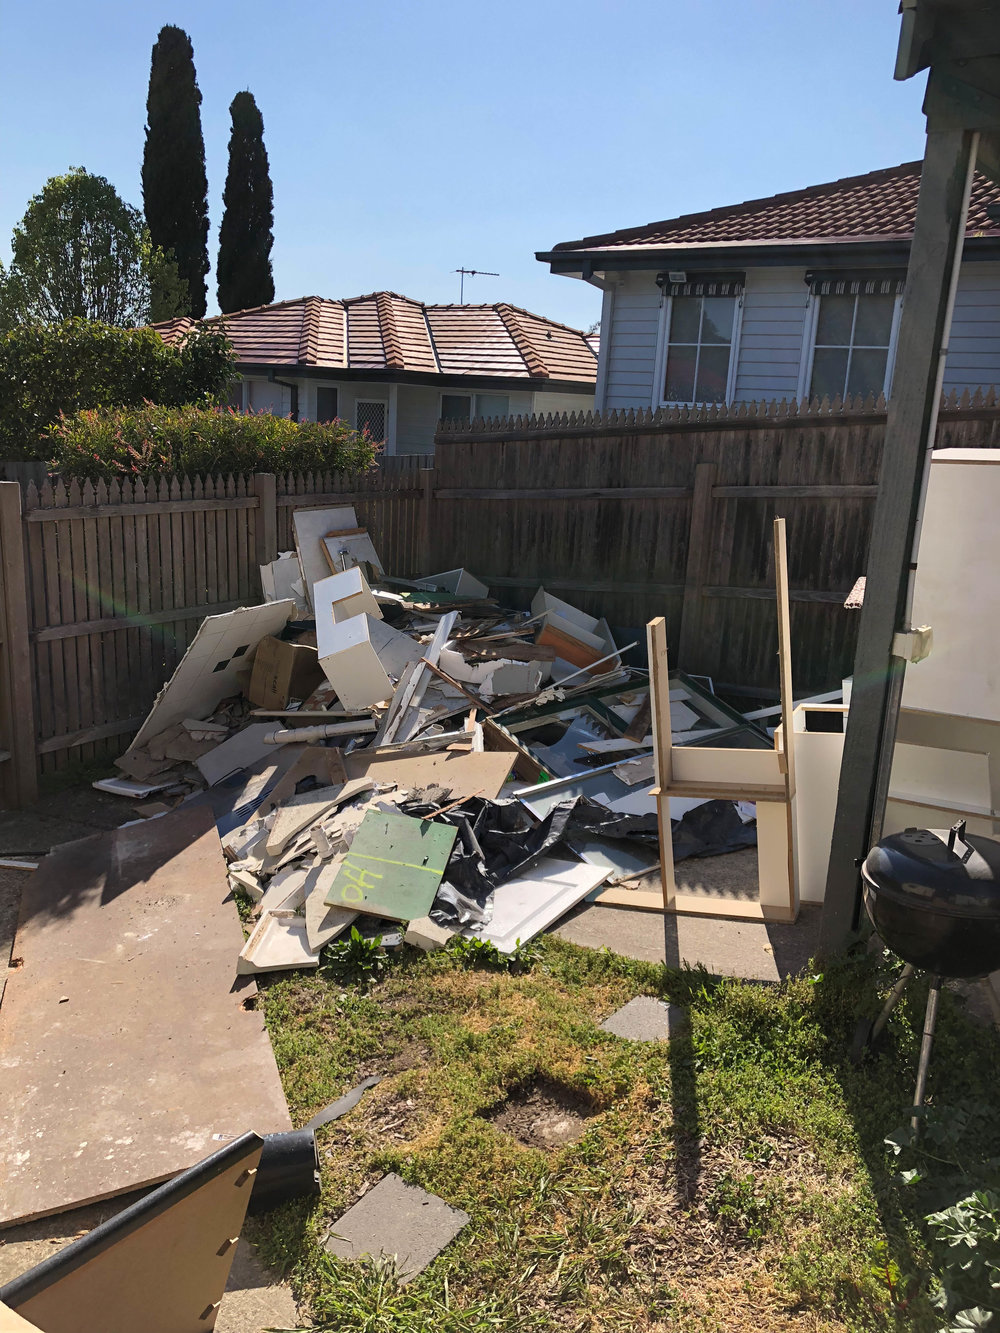 Our backyard wasn't the nicest at this stage haha!